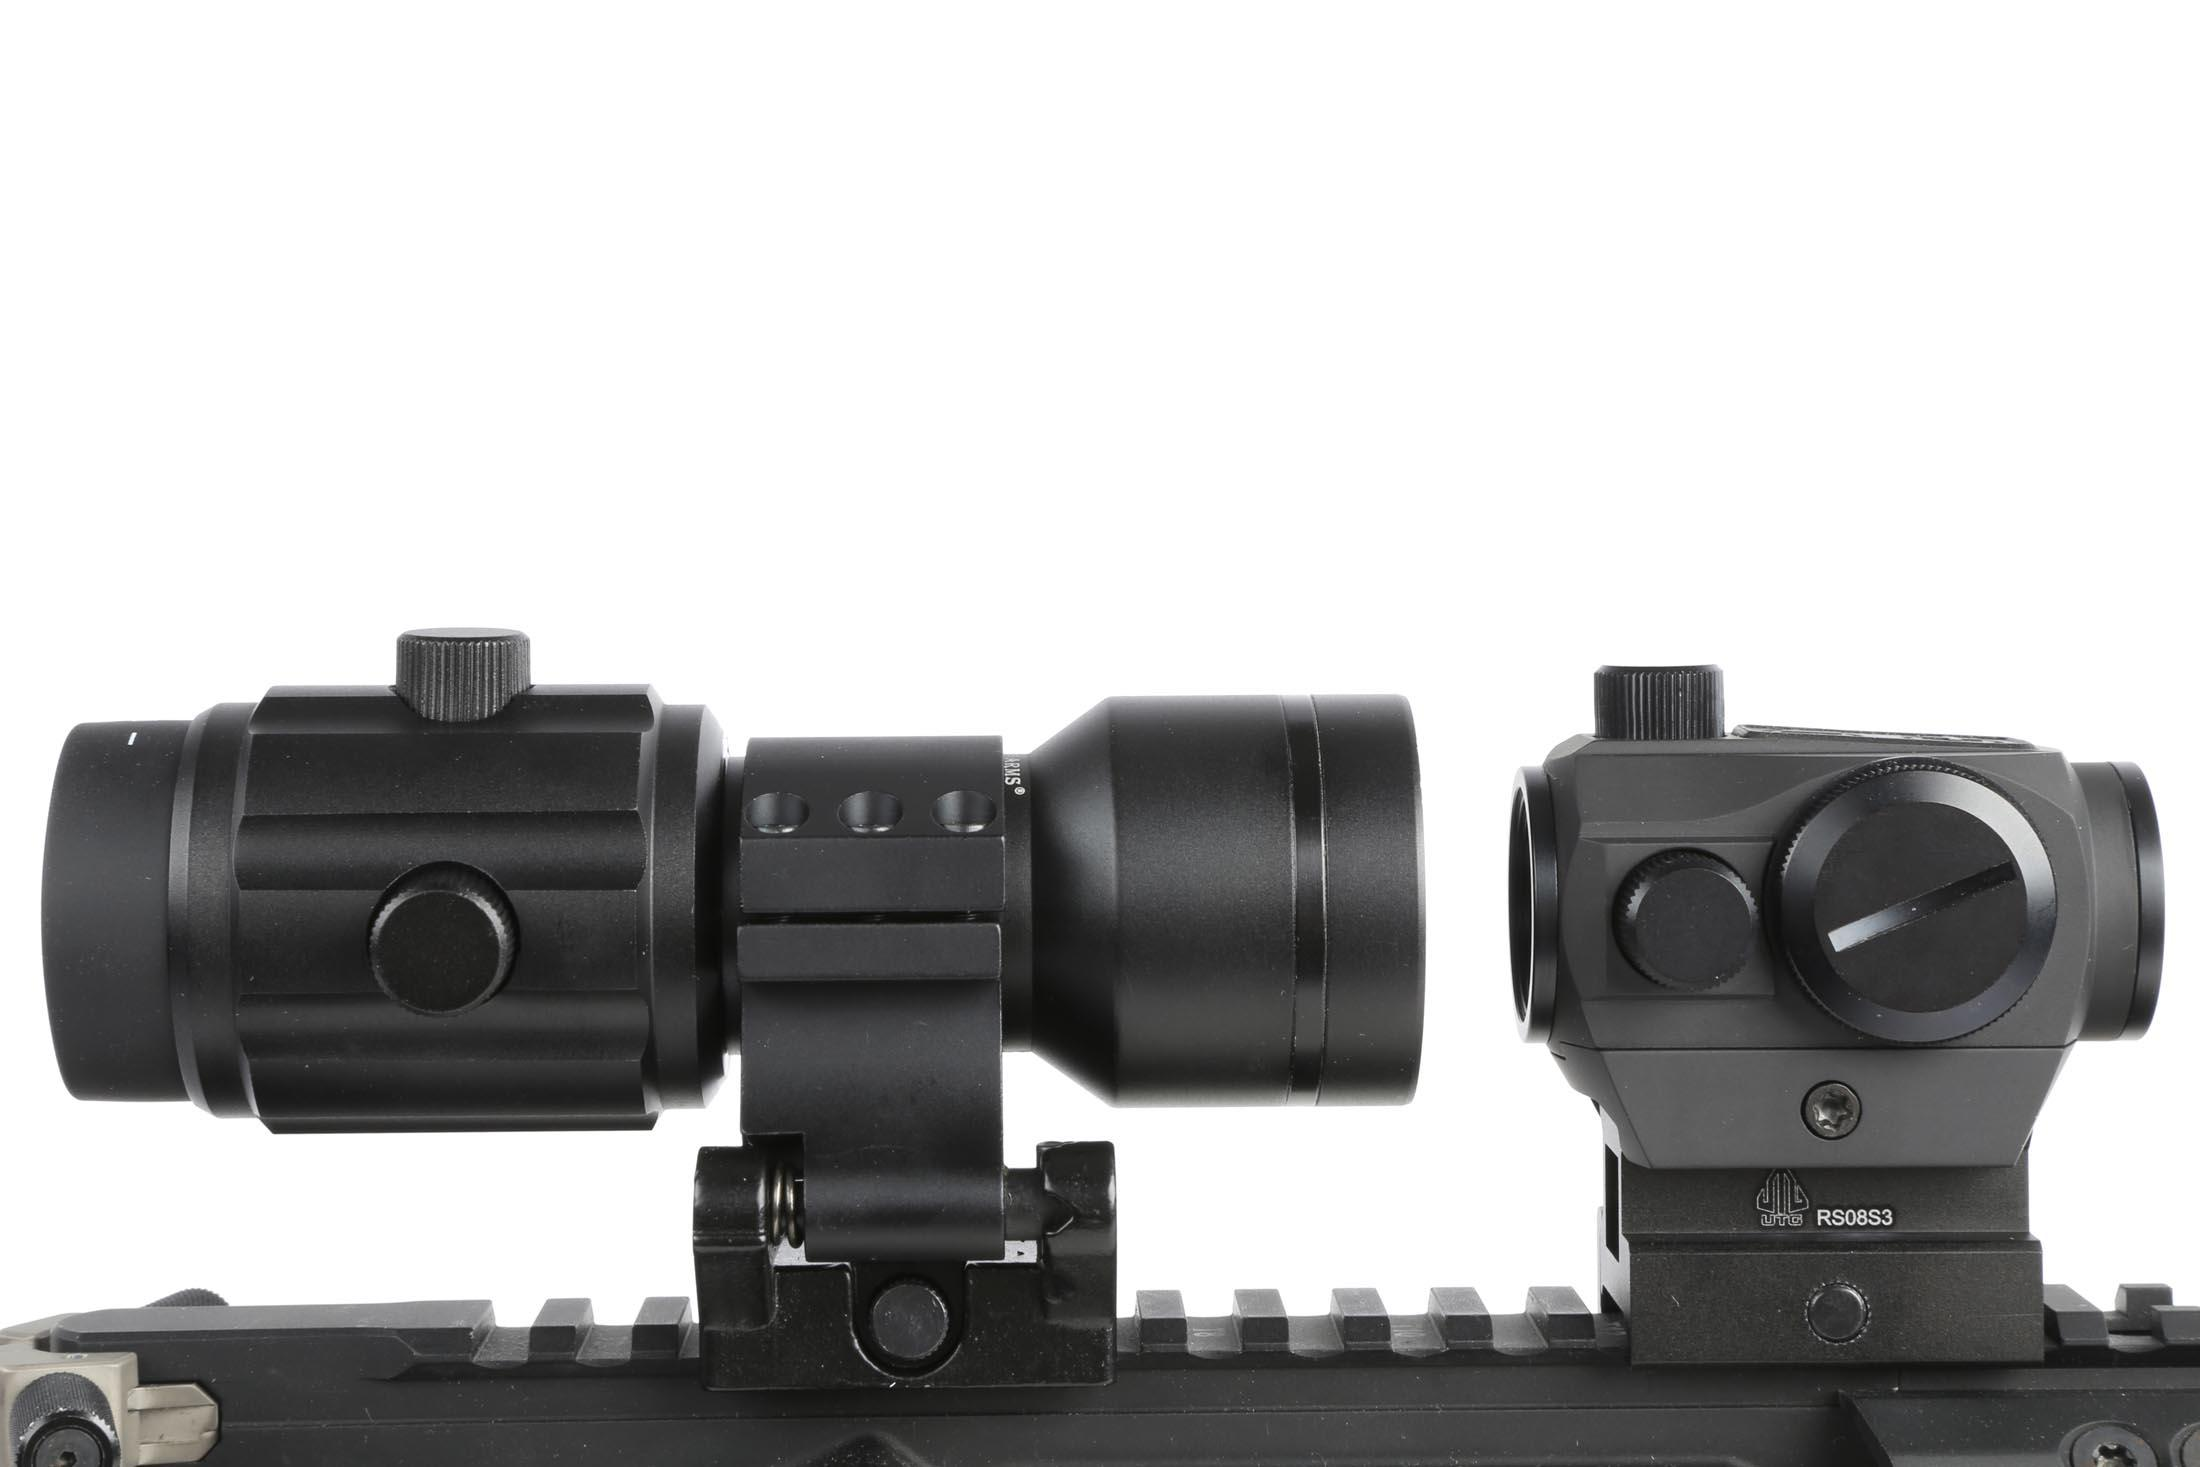 The Primary Arms red dot 6x magnifier has a 30mm tube diameter